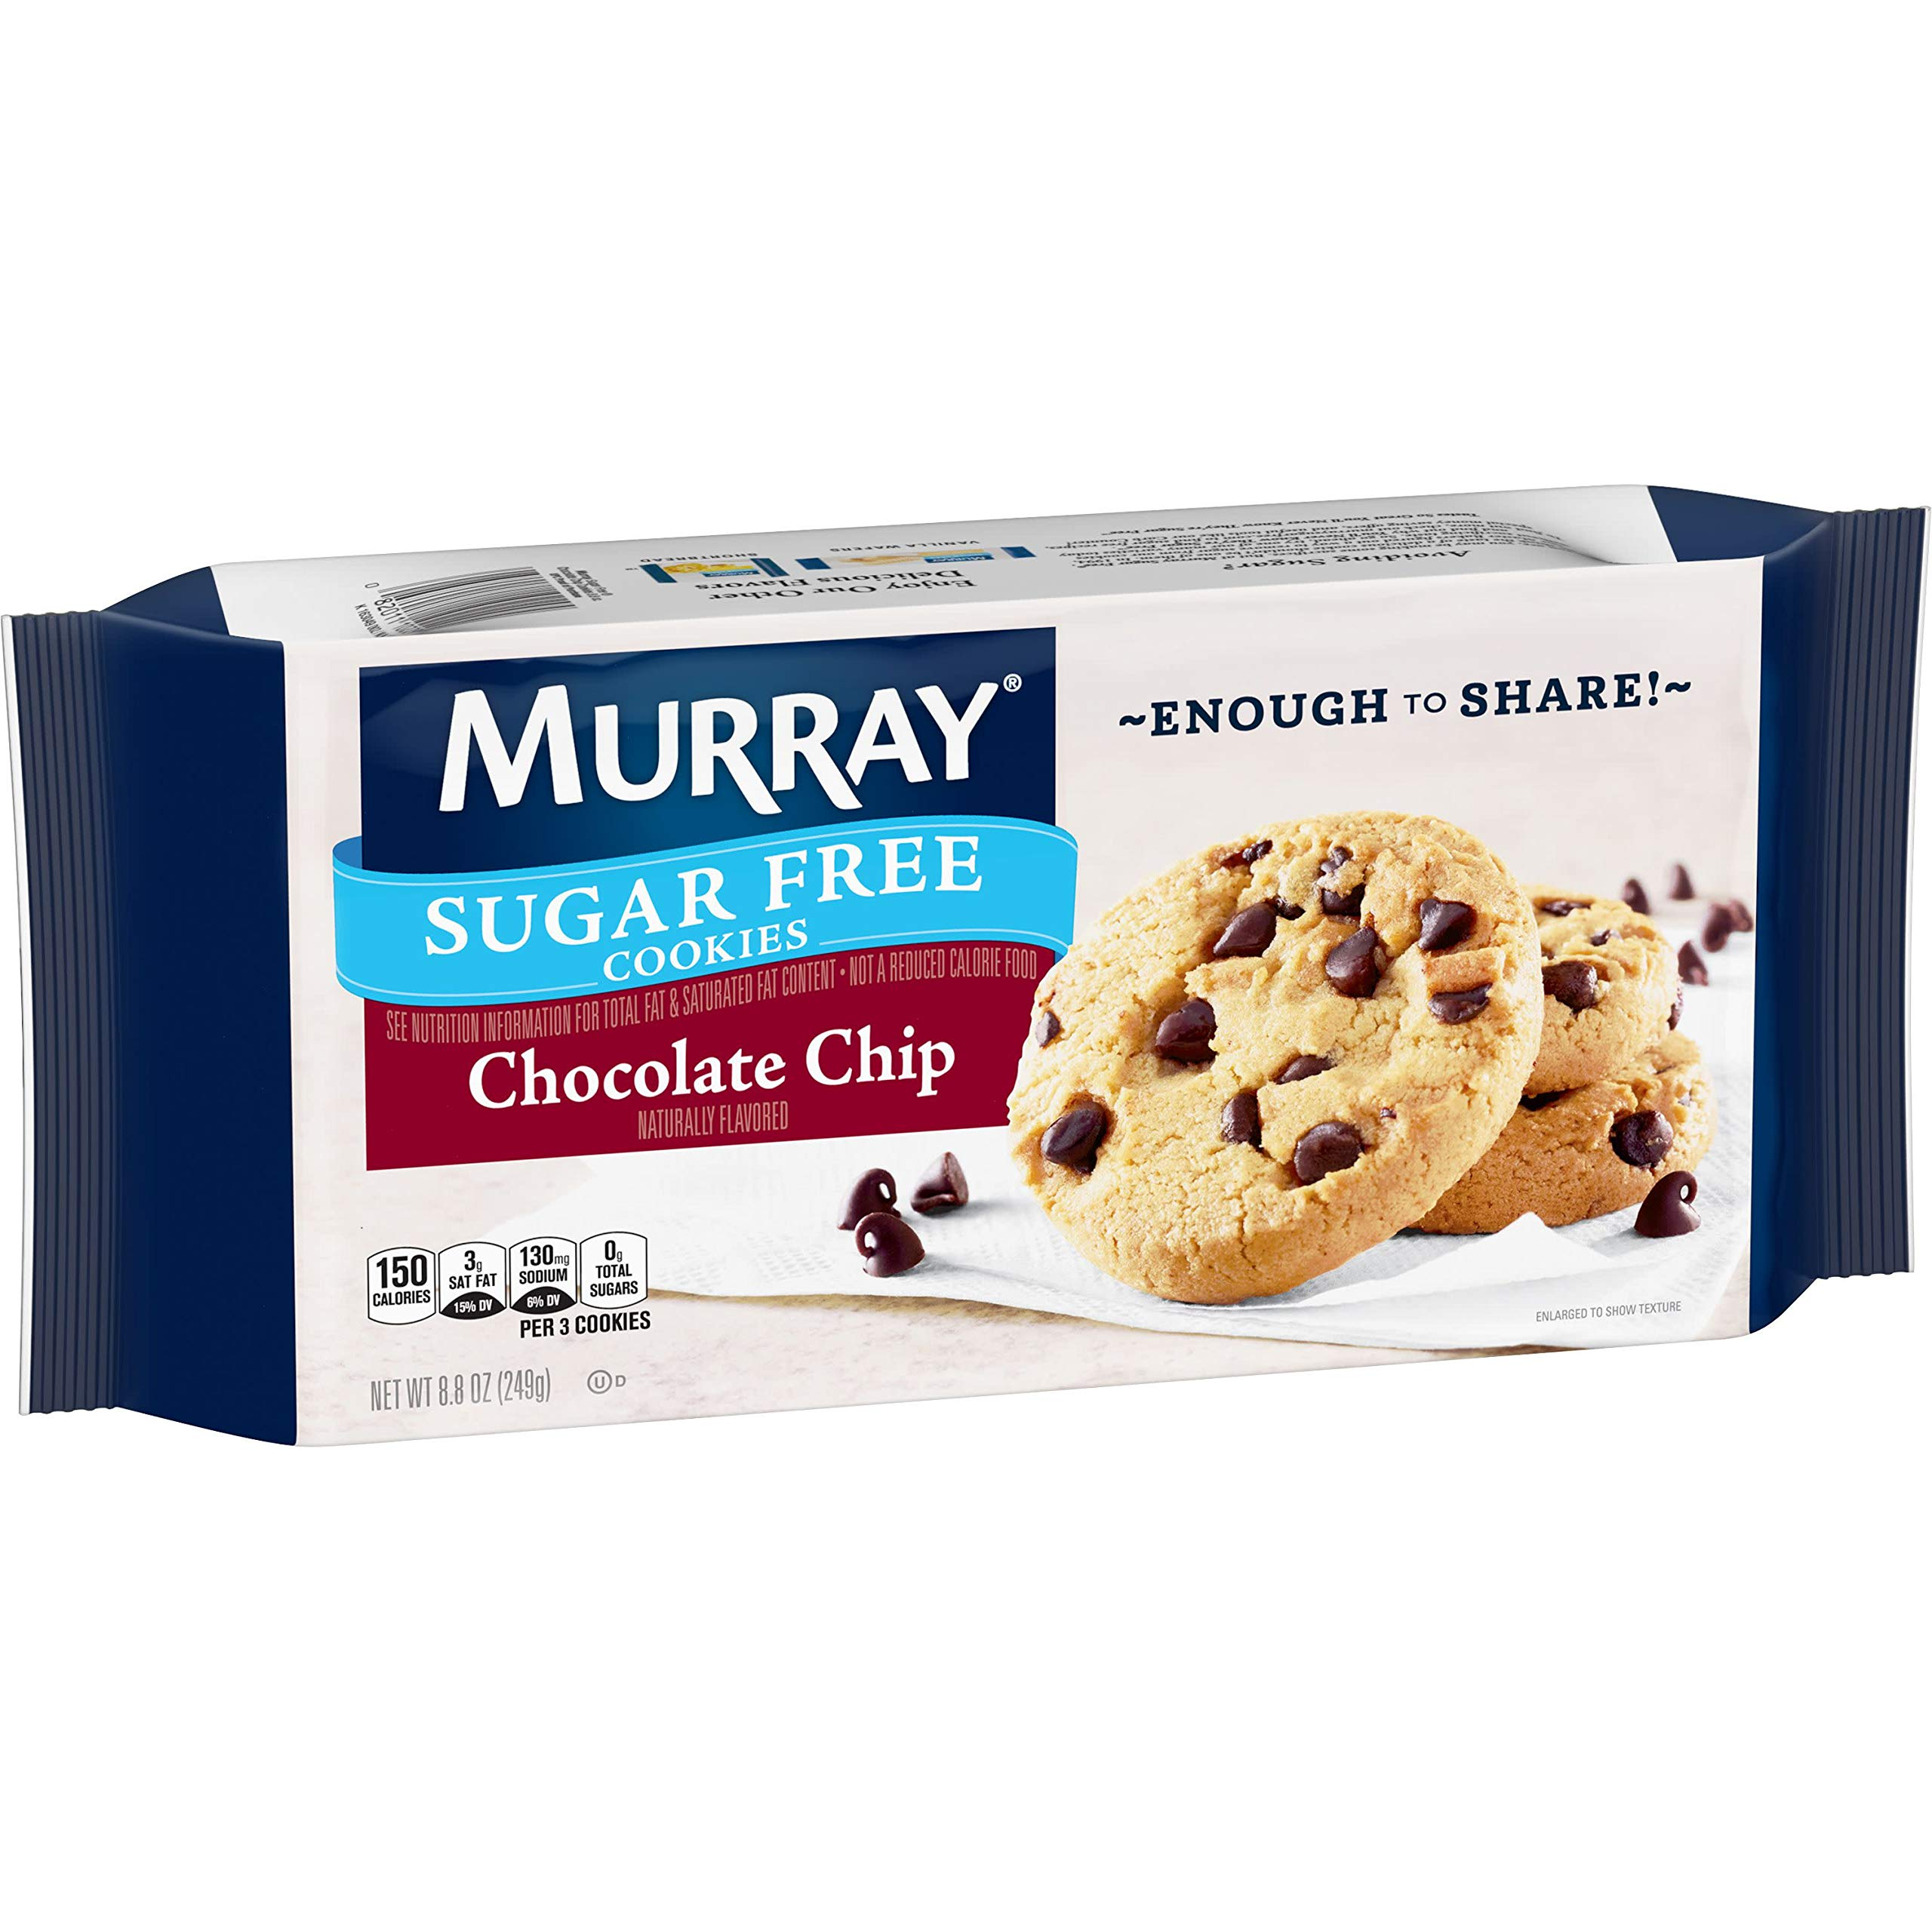 Murray Sugar Free Cookies, Chocolate Chip, 8.8 oz Tray(Pack of 12) by Murray